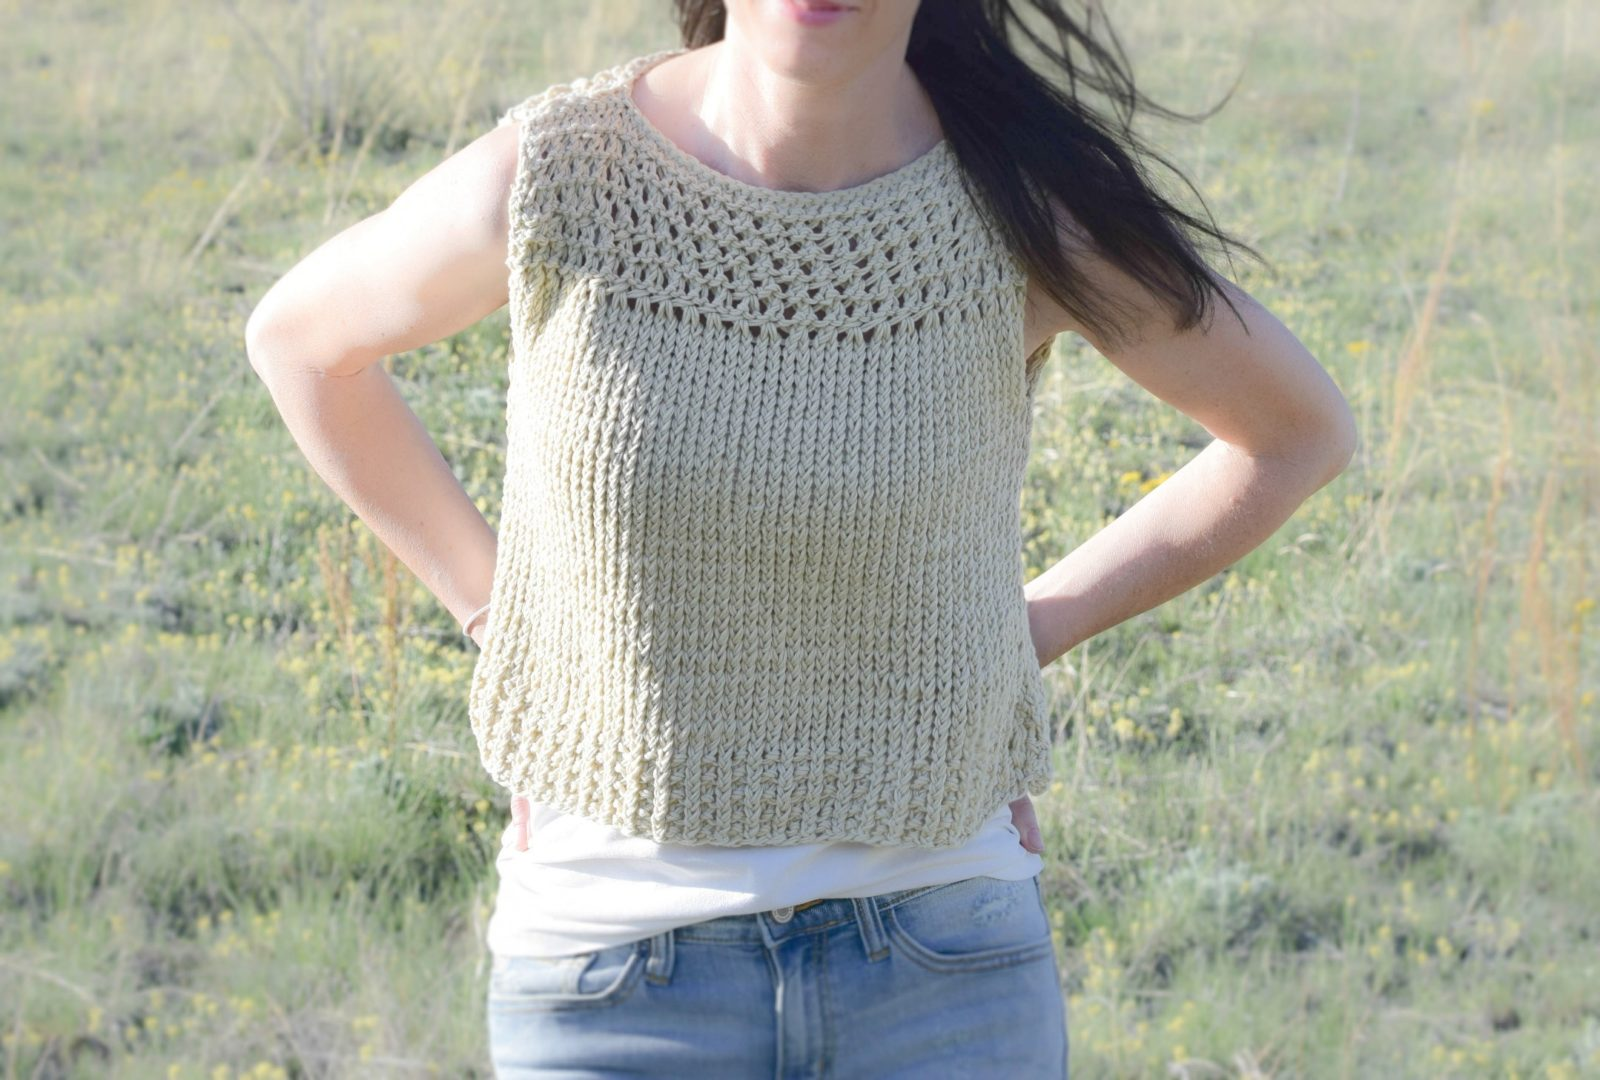 Knitted Summer Tops Patterns : Summer Vacation Knit Top Pattern   Mama In A Stitch